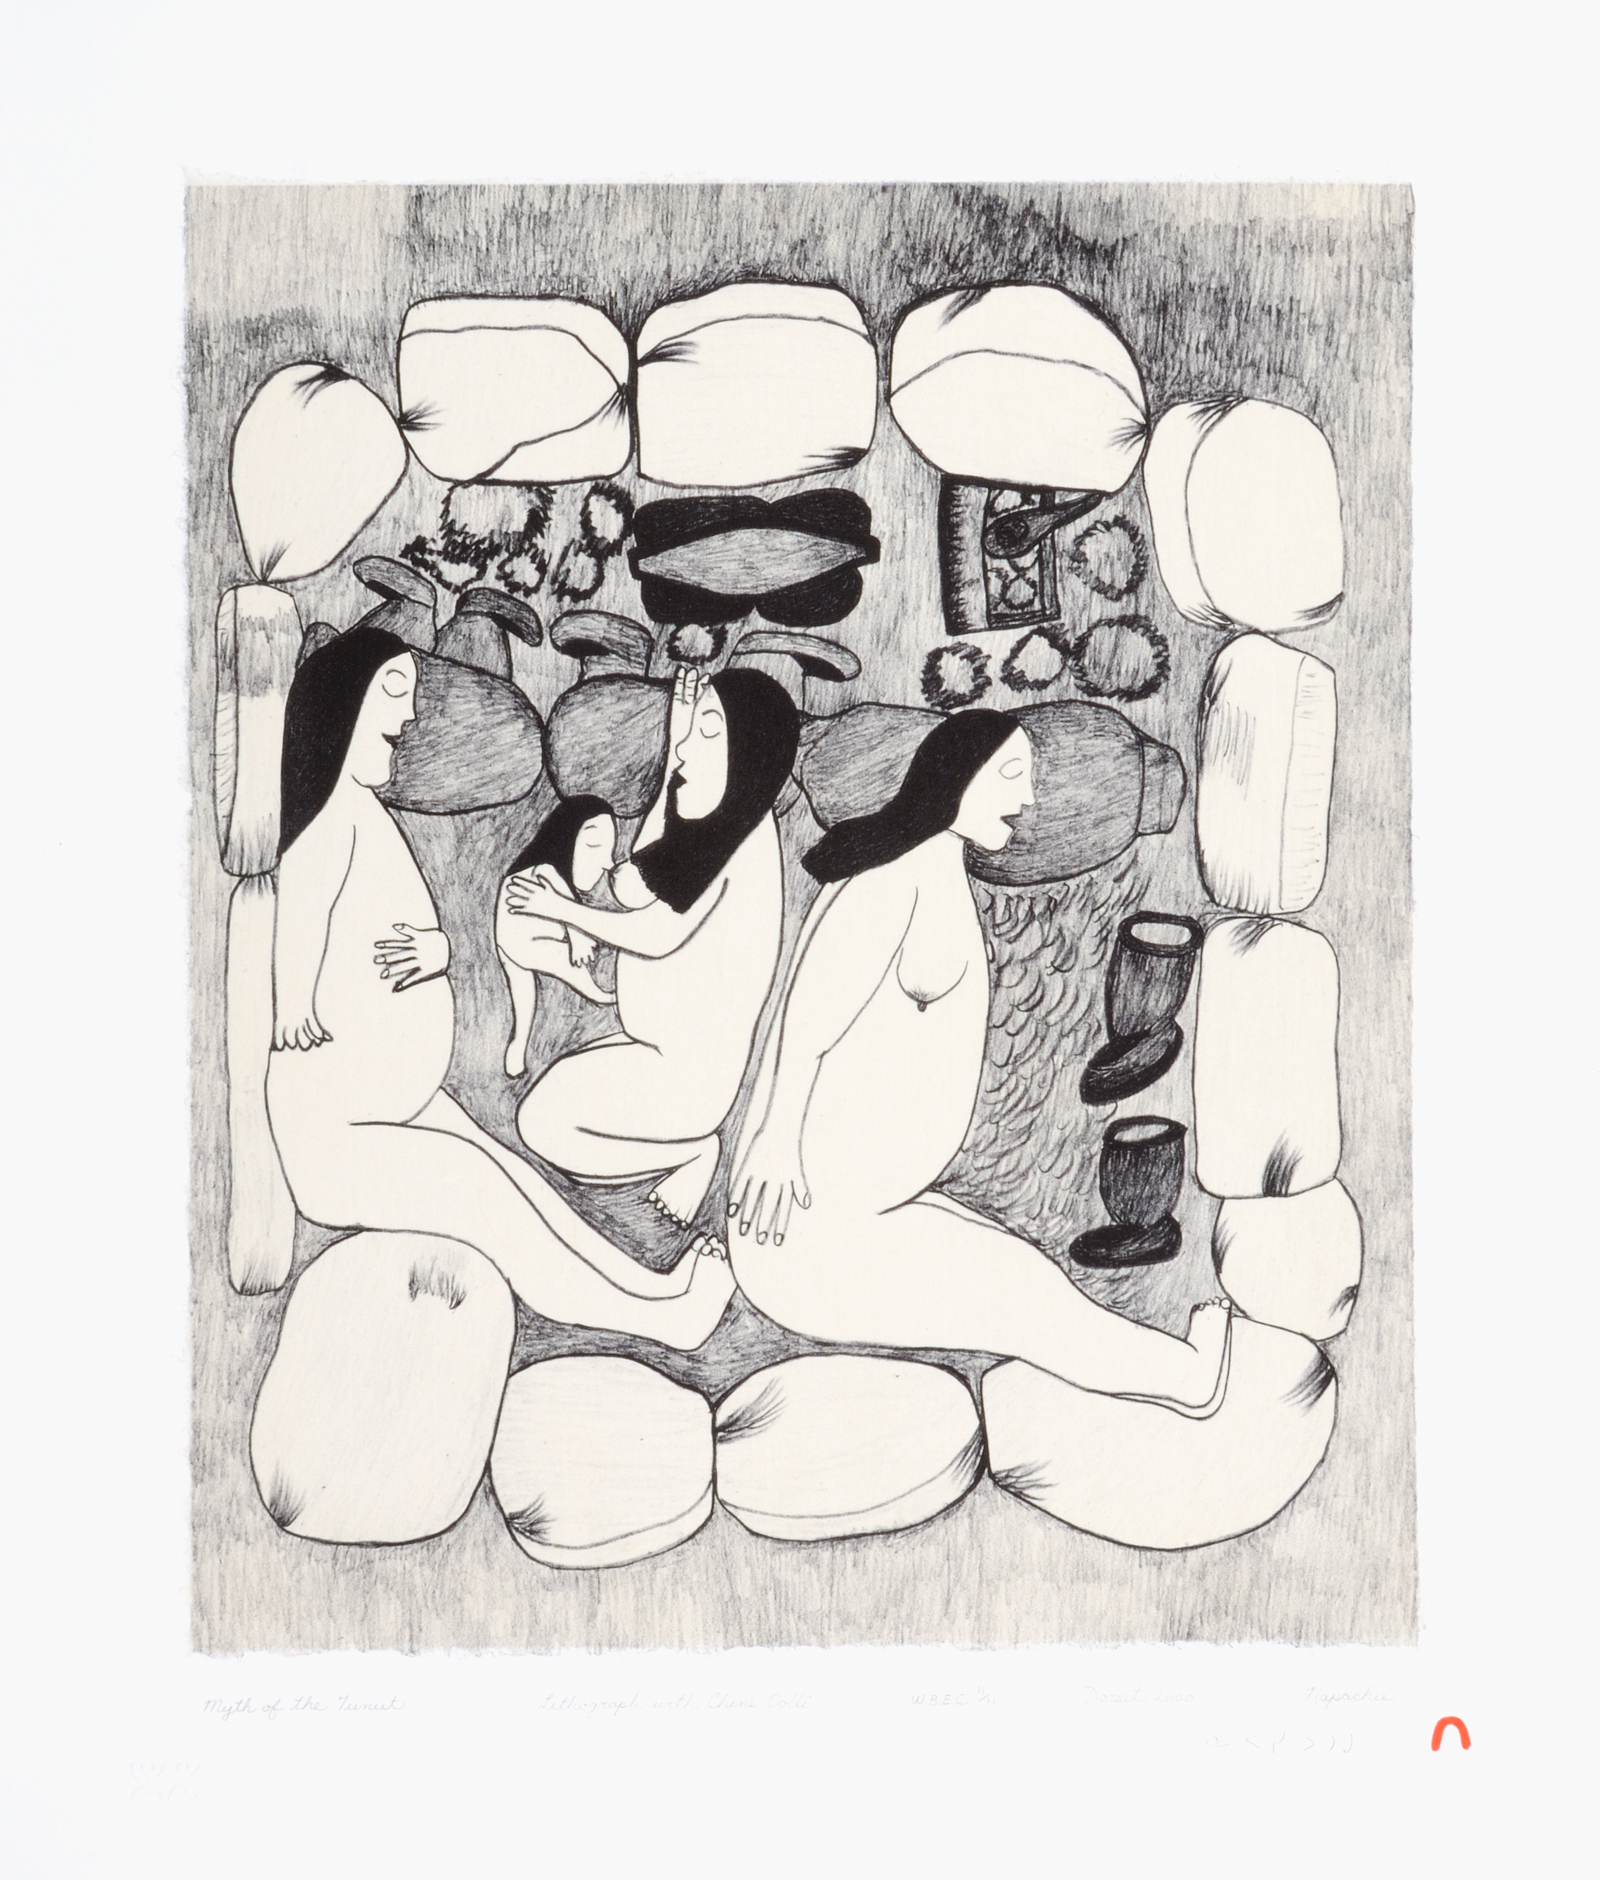 Napachie Pootoogook  MYTH OF THE TUNIIT Lithograph & Chine Colle 2000 51 x 43.2 cm $450.00 CDN Released in the 2000 collection Dorset ID#: 00-22